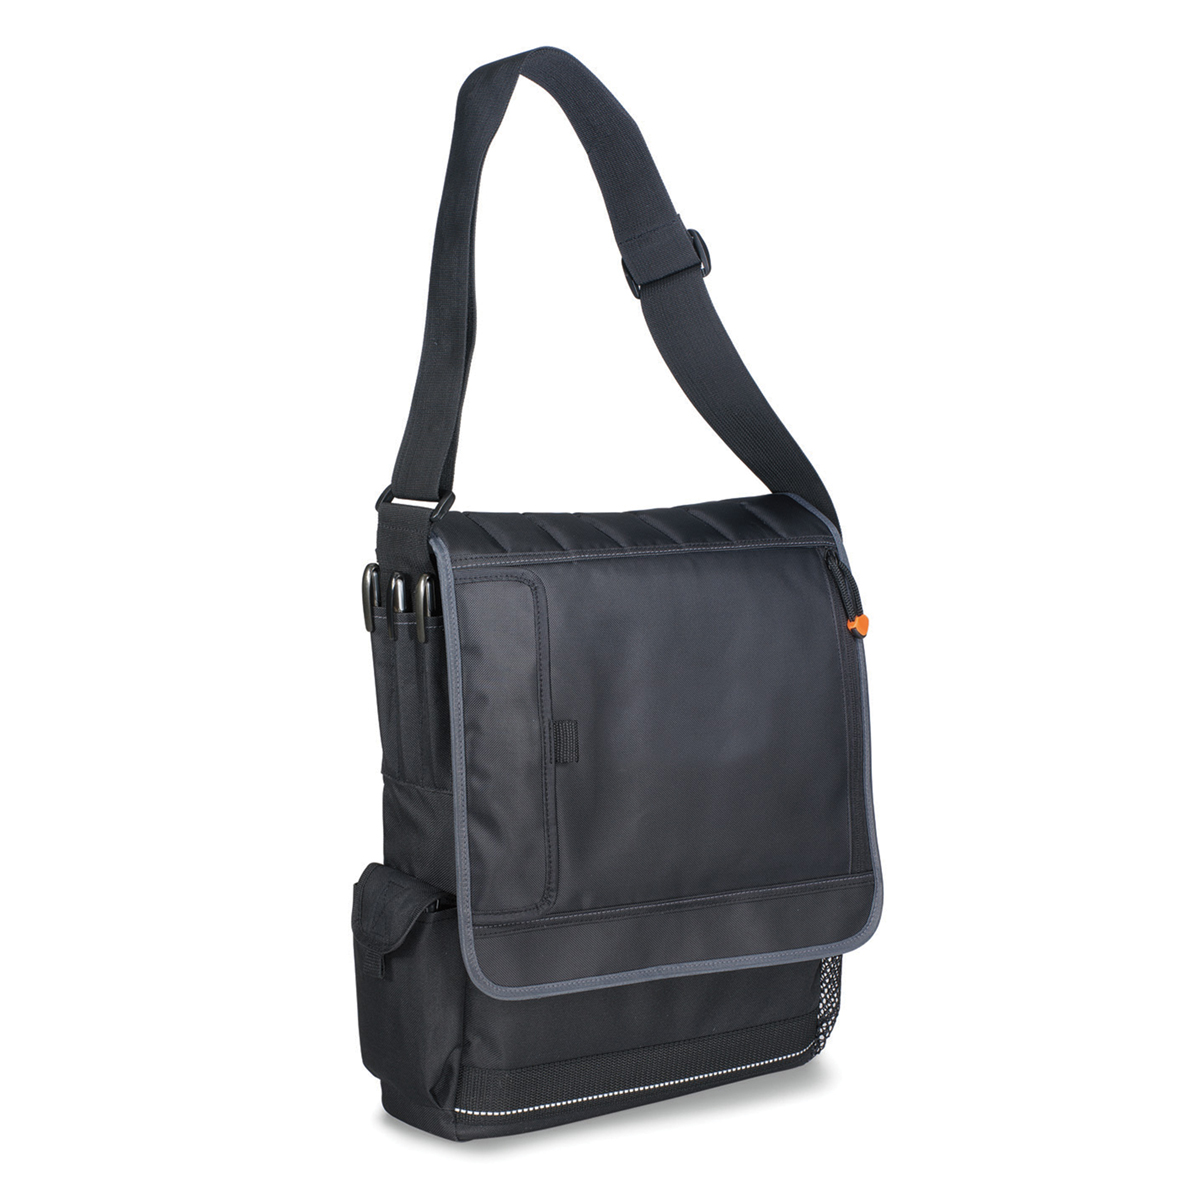 Developer Laptop Satchel